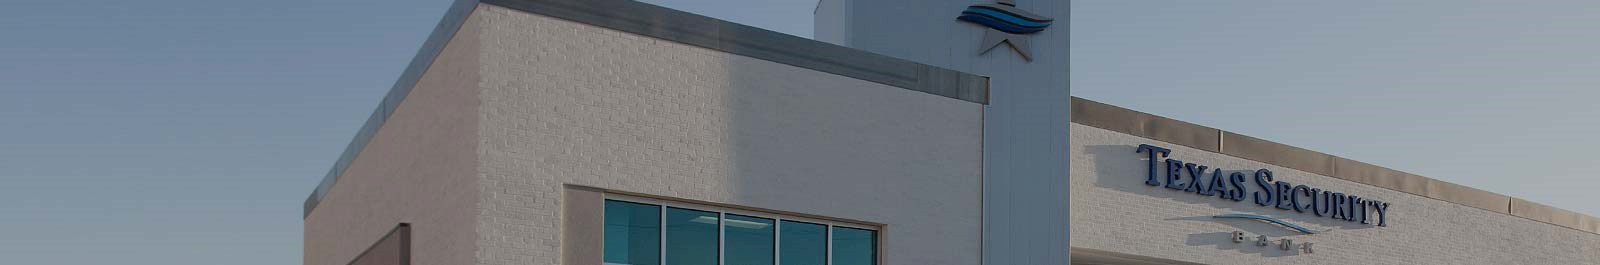 Header image - bank building exterior